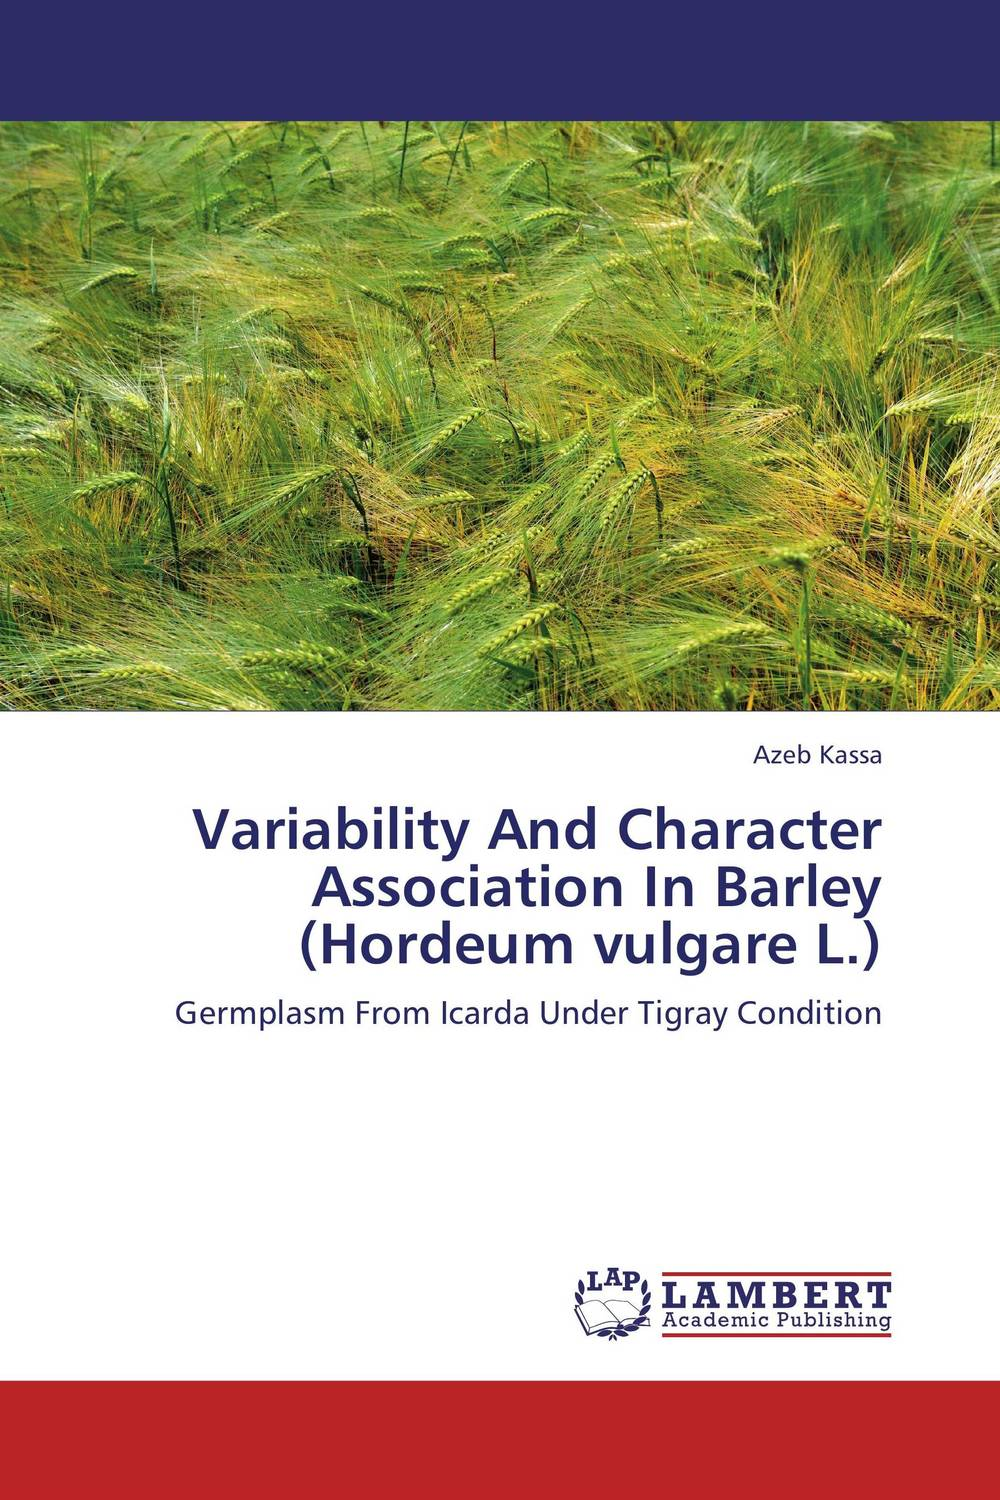 Variability And Character Association In Barley (Hordeum vulgare L.) butterflies in the barley